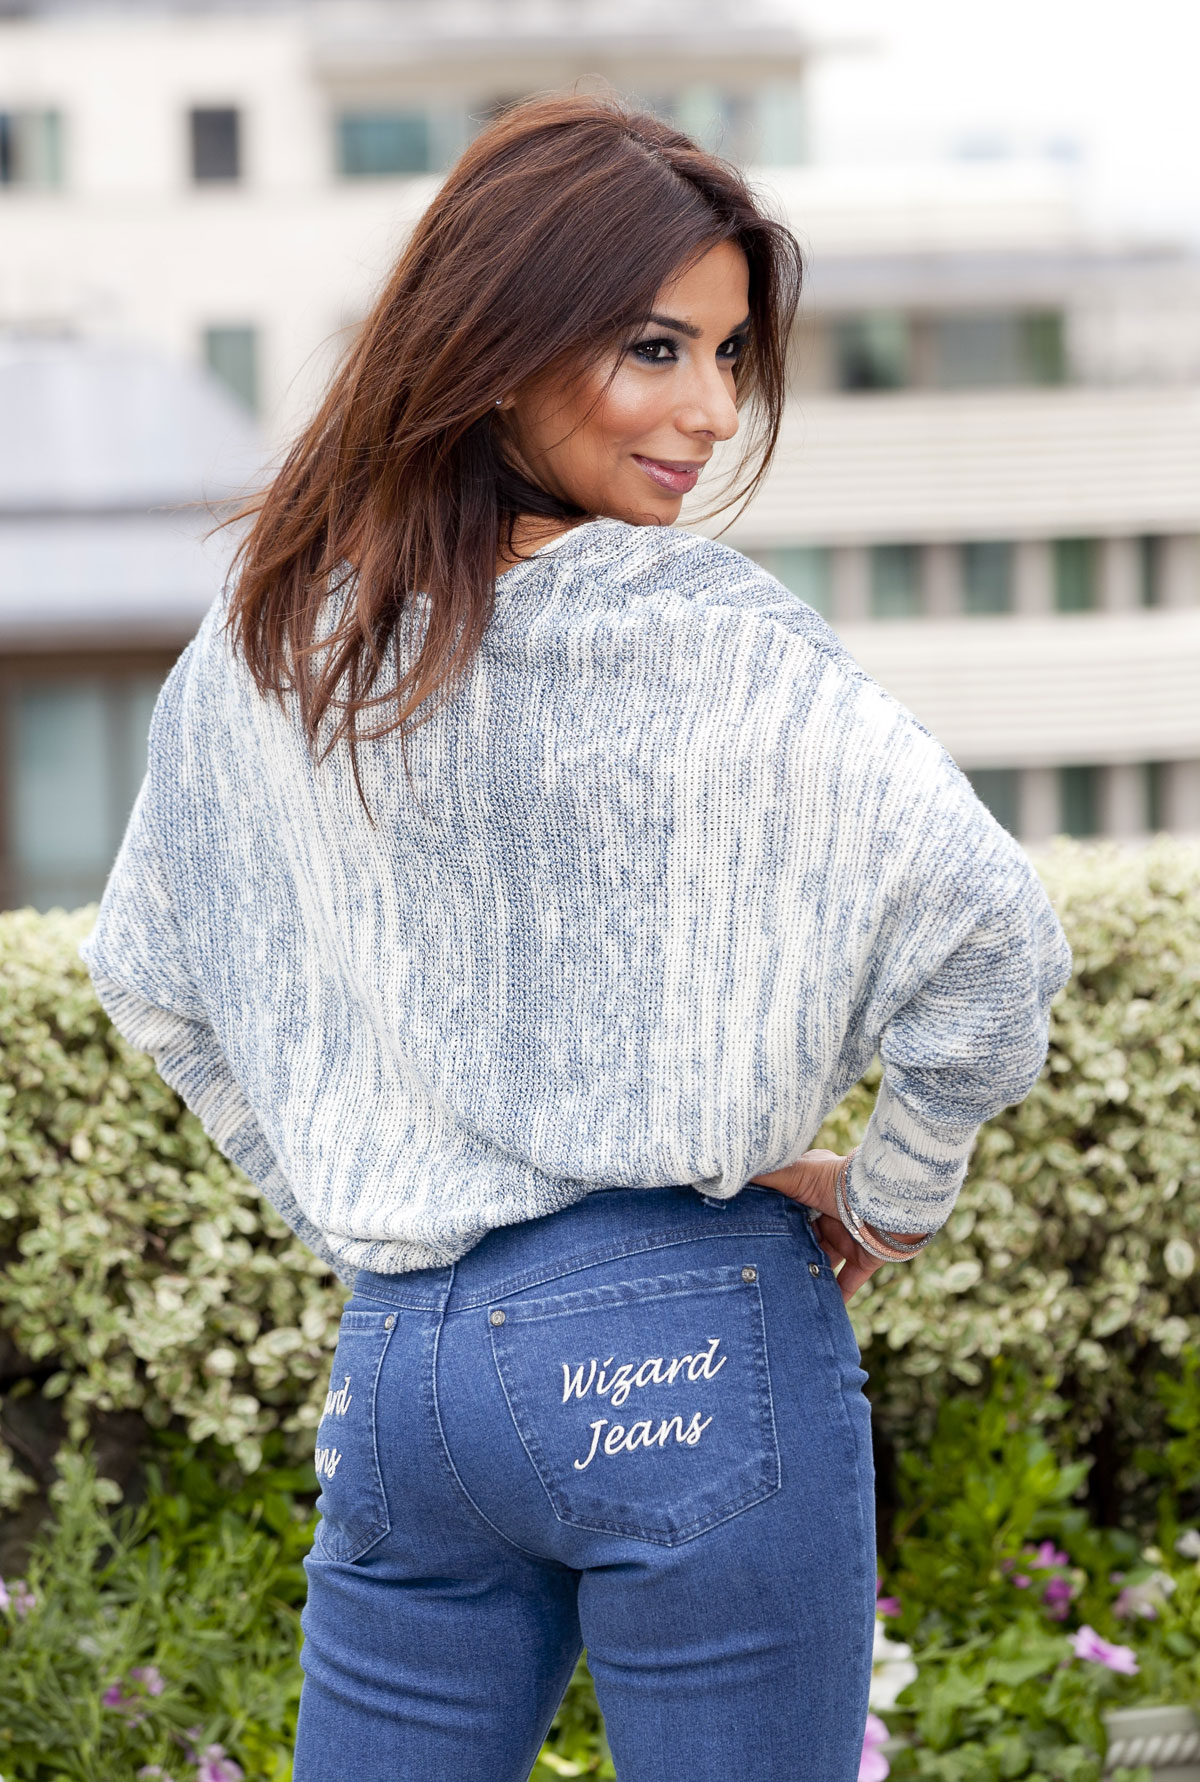 The Year S Of Living Non: SHOBNA GULATI 2012 Rear Of The Year Winner In London